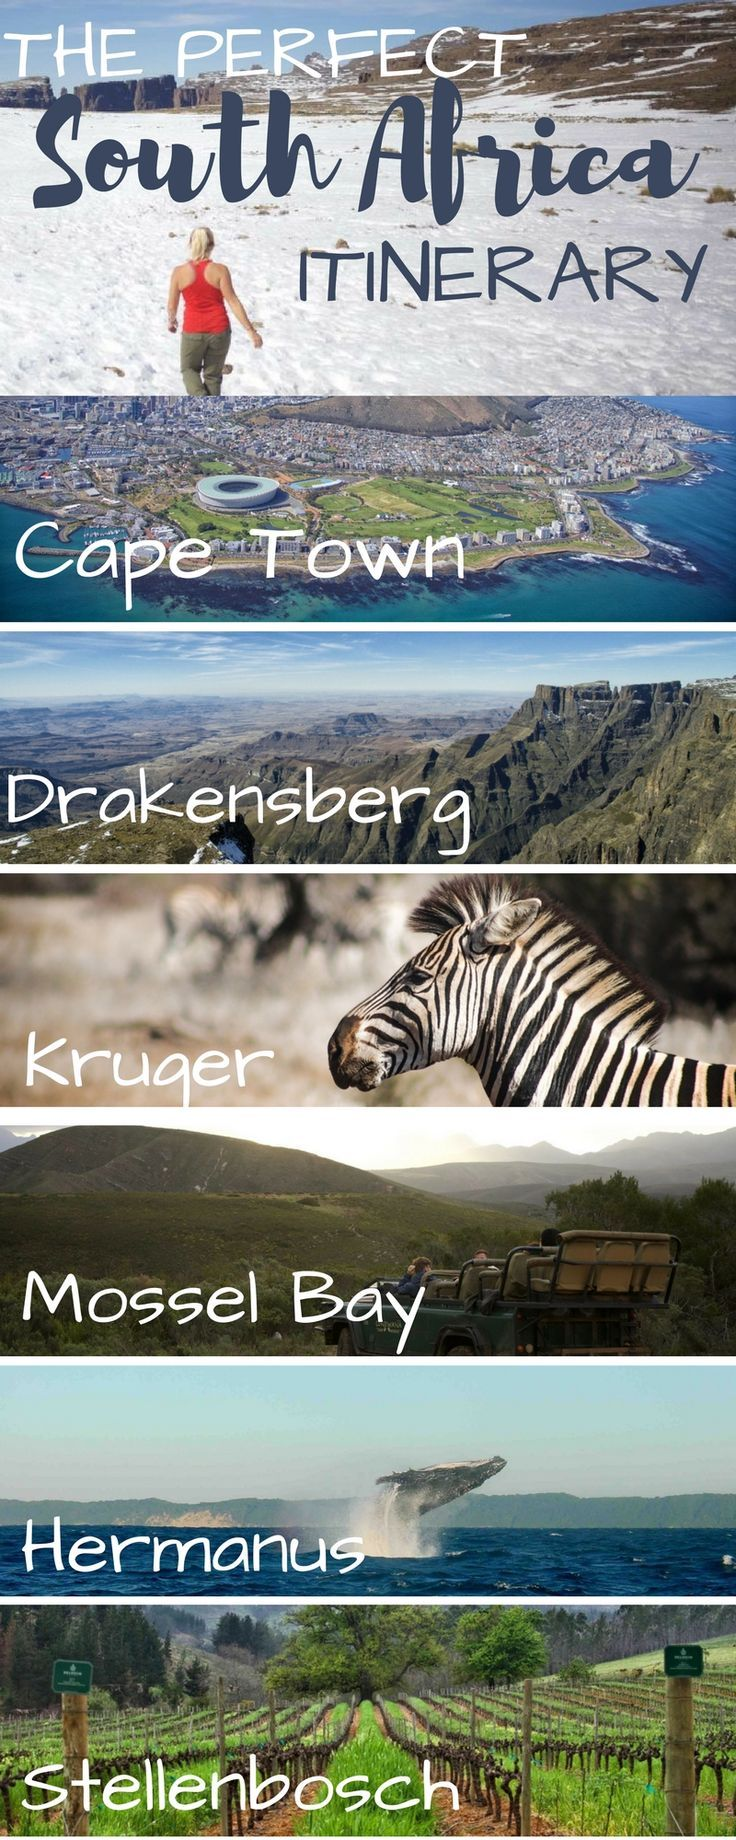 The ultimate South Africa road trip travel itinerary. Including Cape Town, Stellenbosch, Safari, Johannesburg, Kruger National Park, Durban, plenty of beaches!